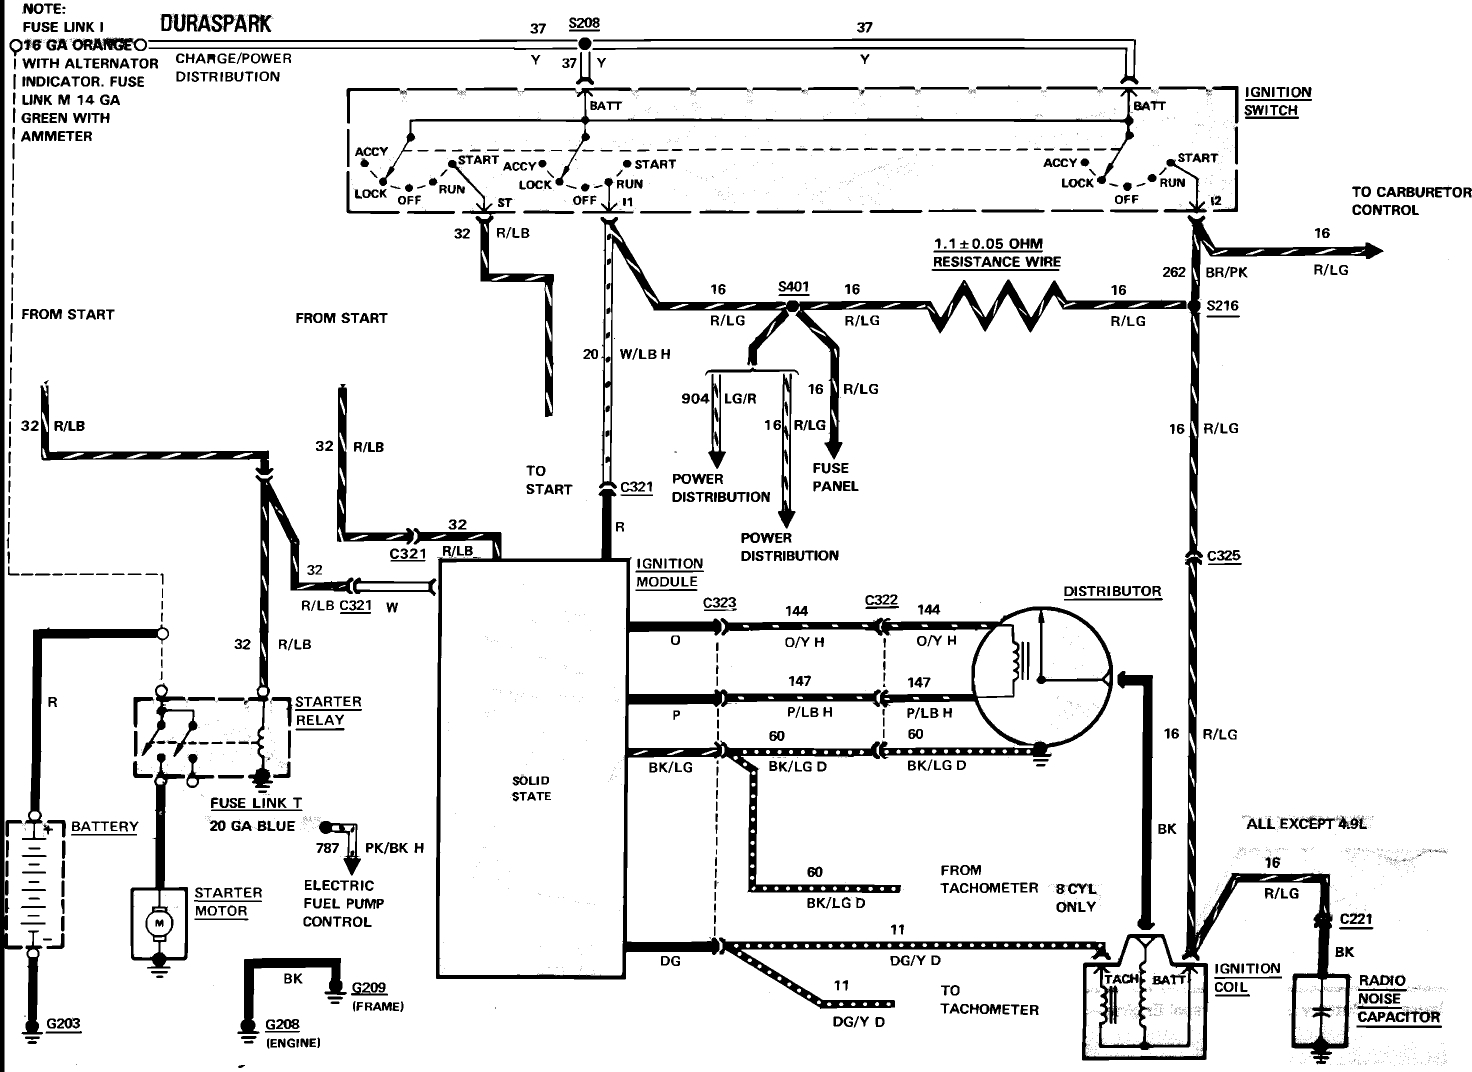 240 volt lighting circuit wiring diagram